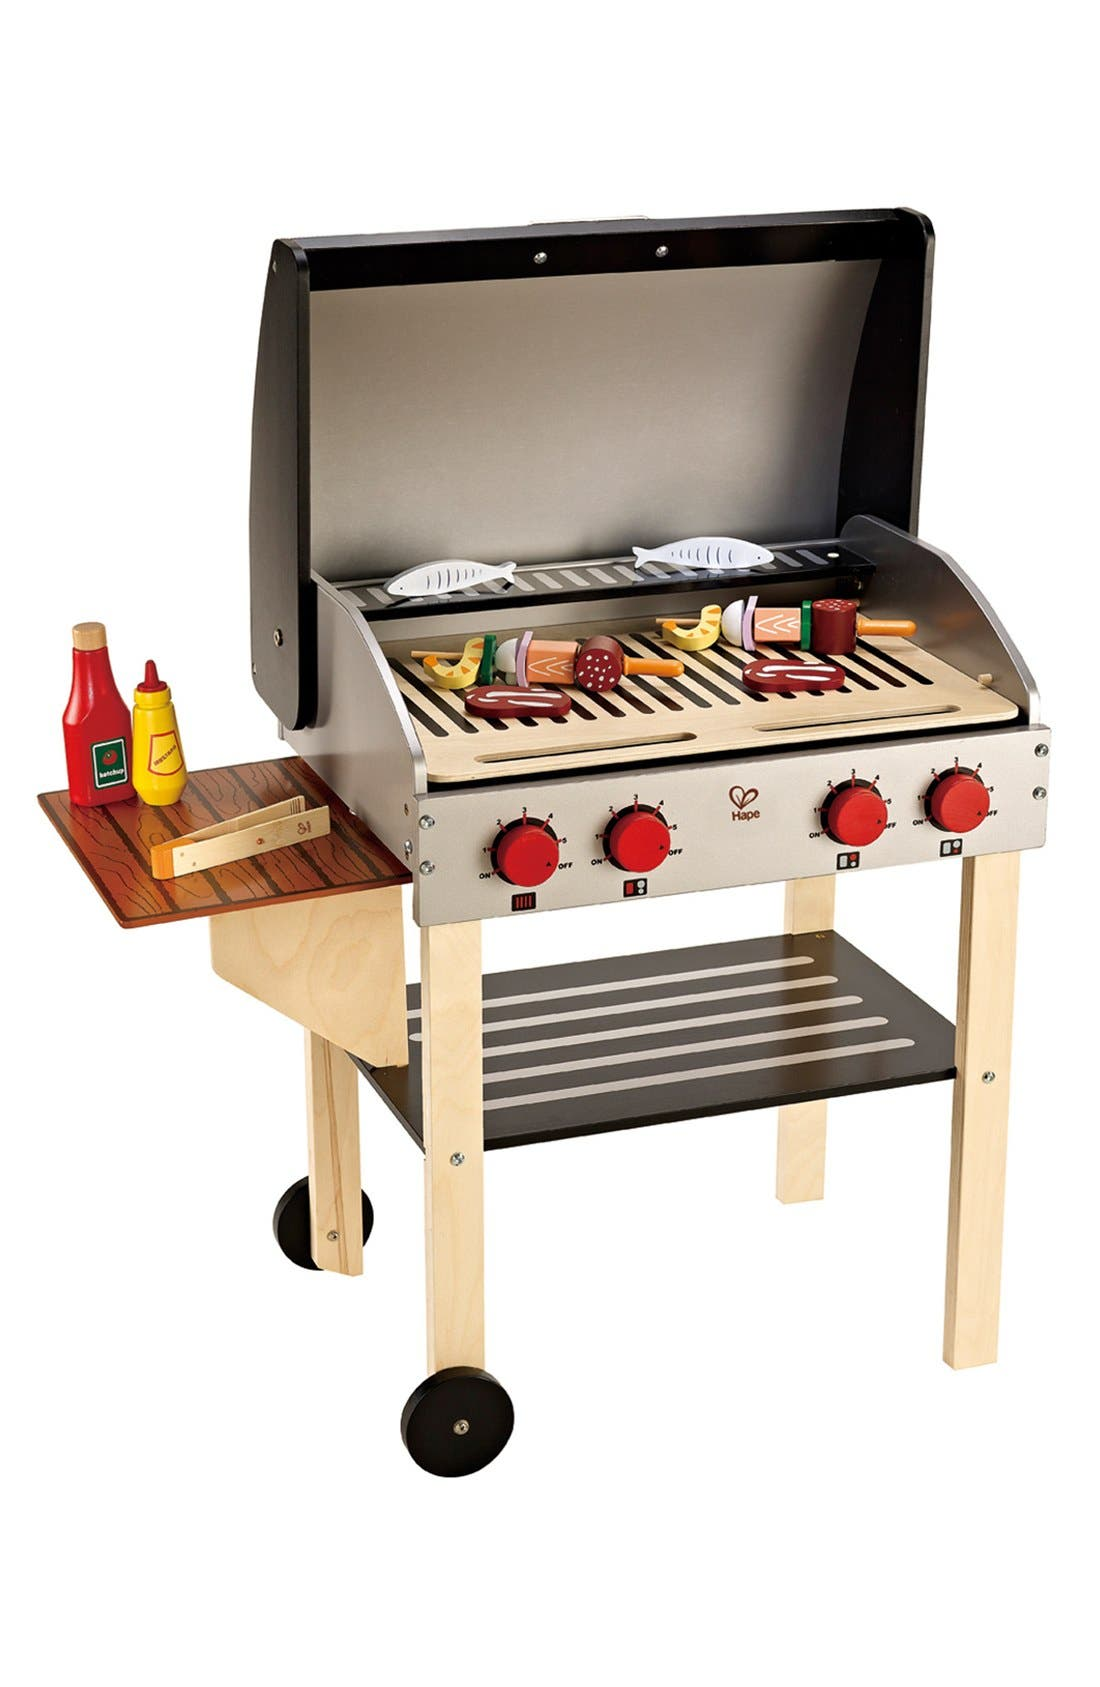 Hape Gourmet Grill & Shish Kabob Play Set